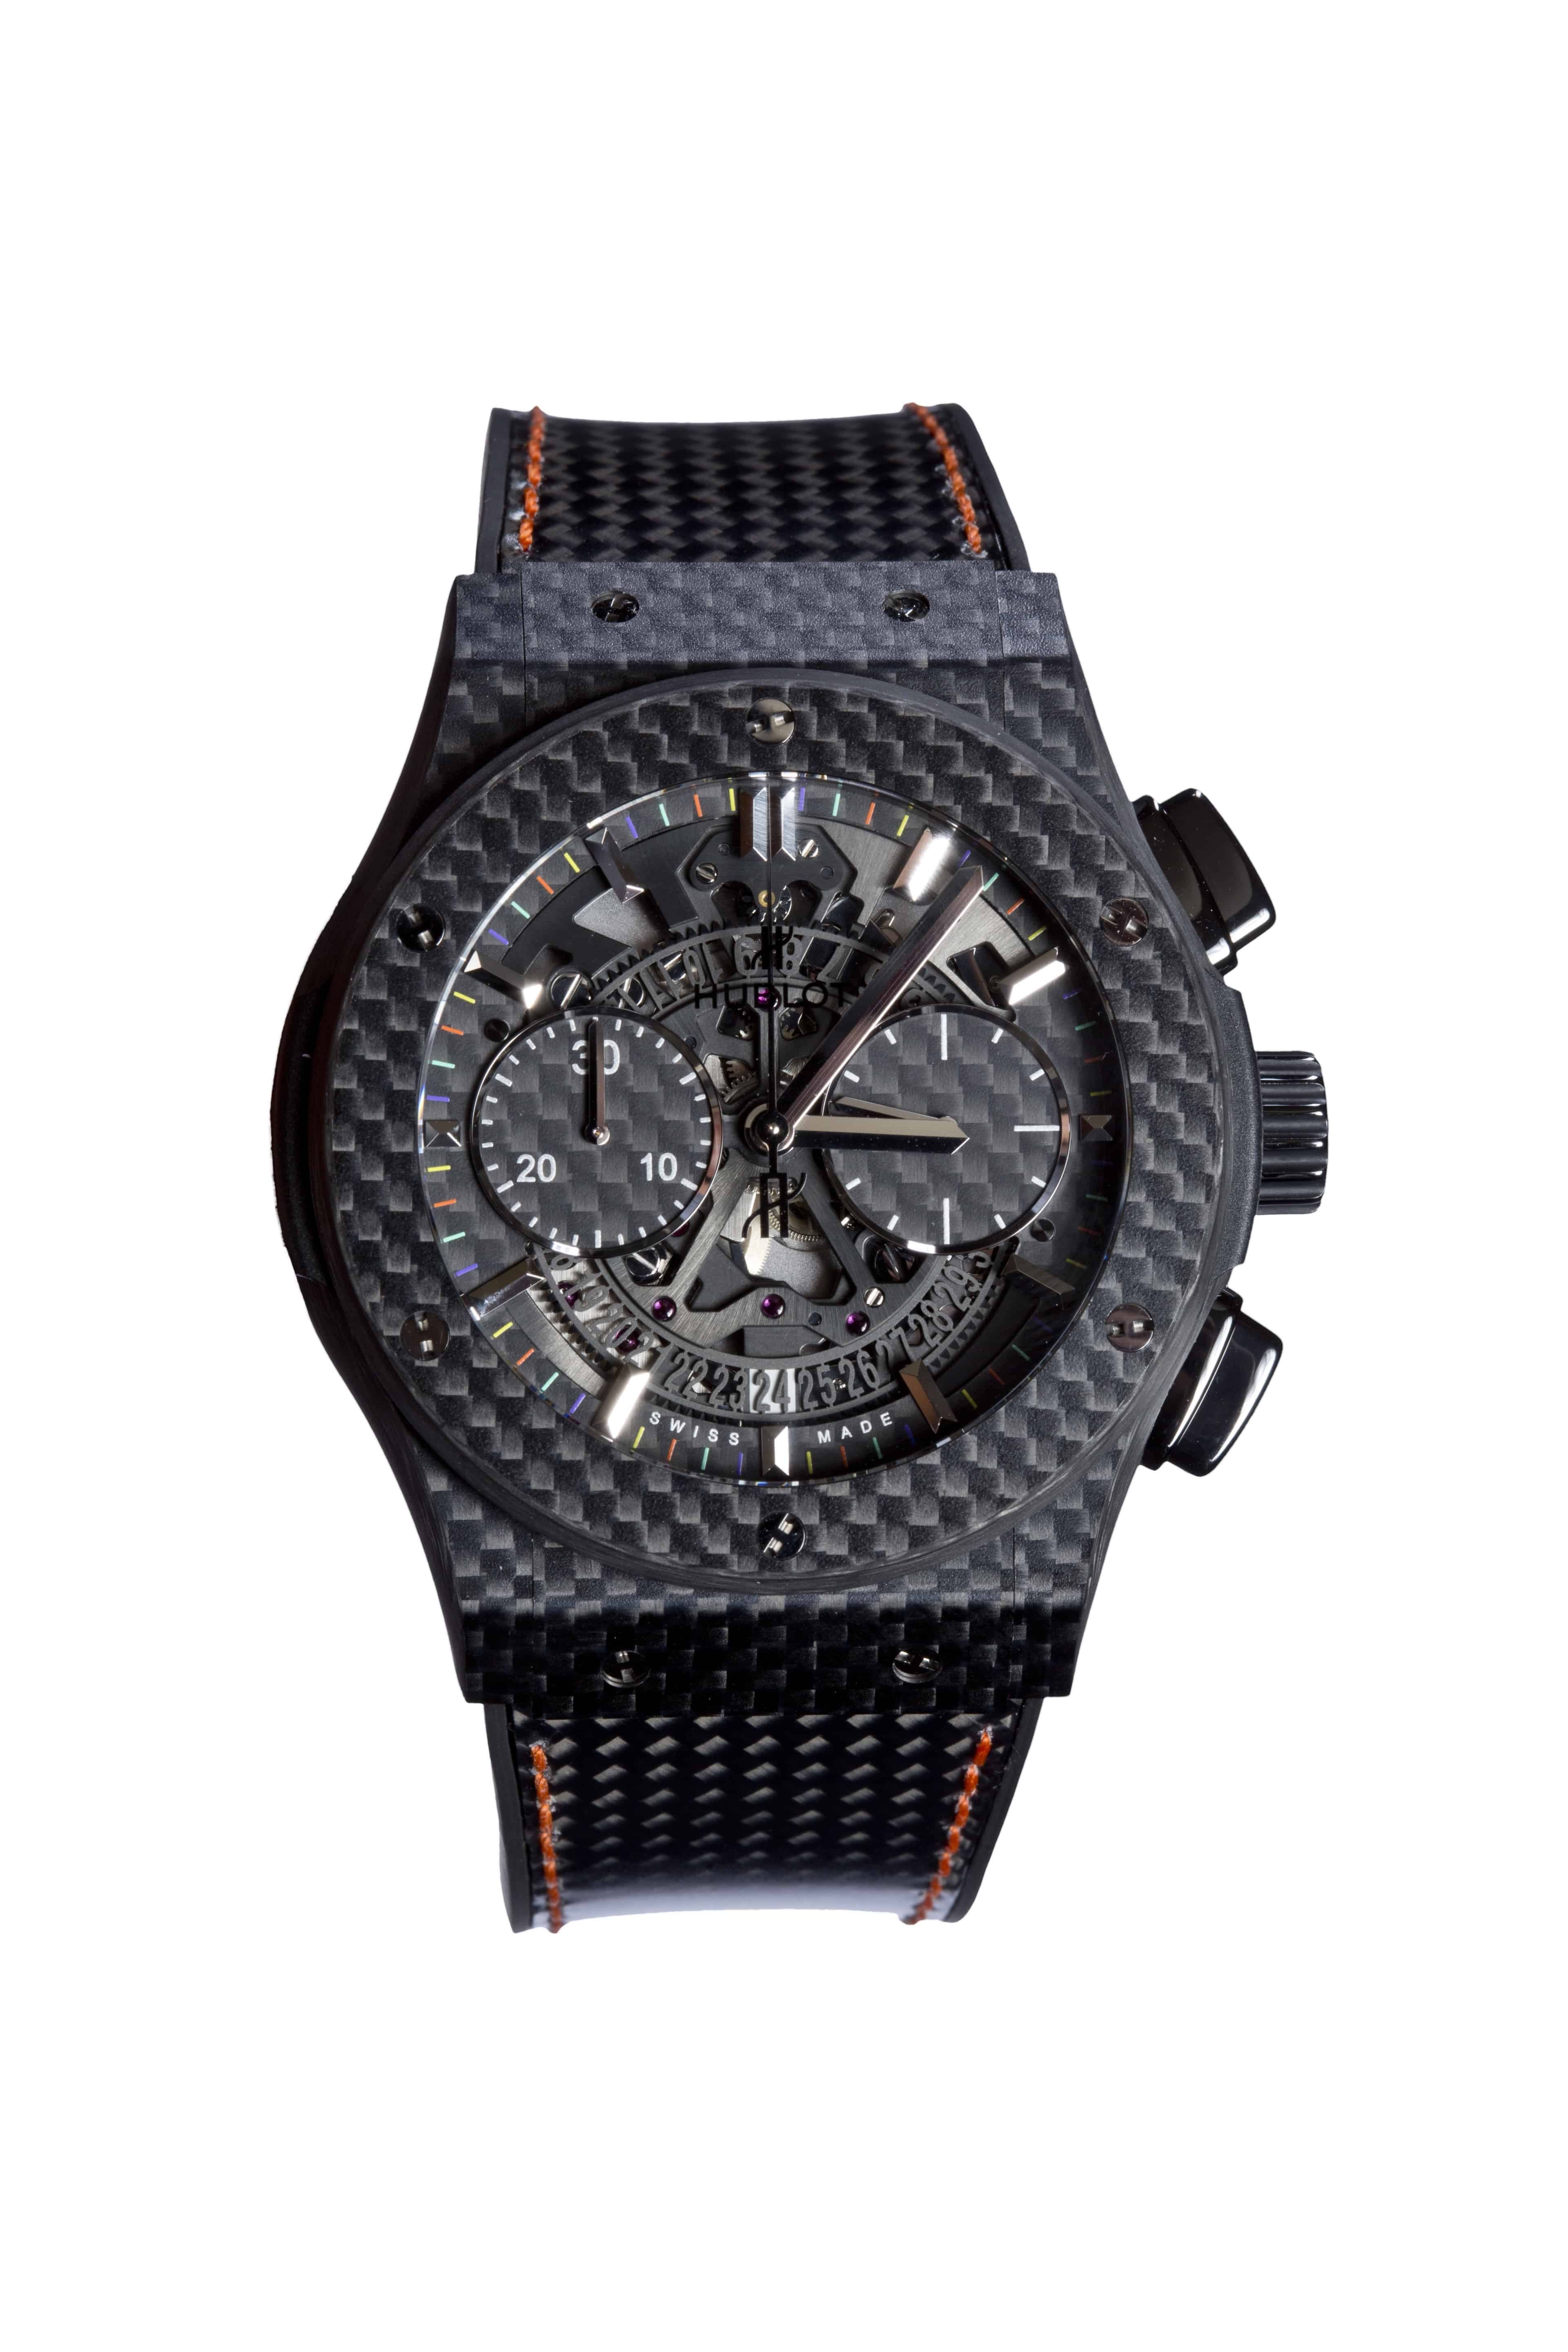 Classic Fusion Best Buddies - What happens when Hublot and Best Buddies team up? Just watch!